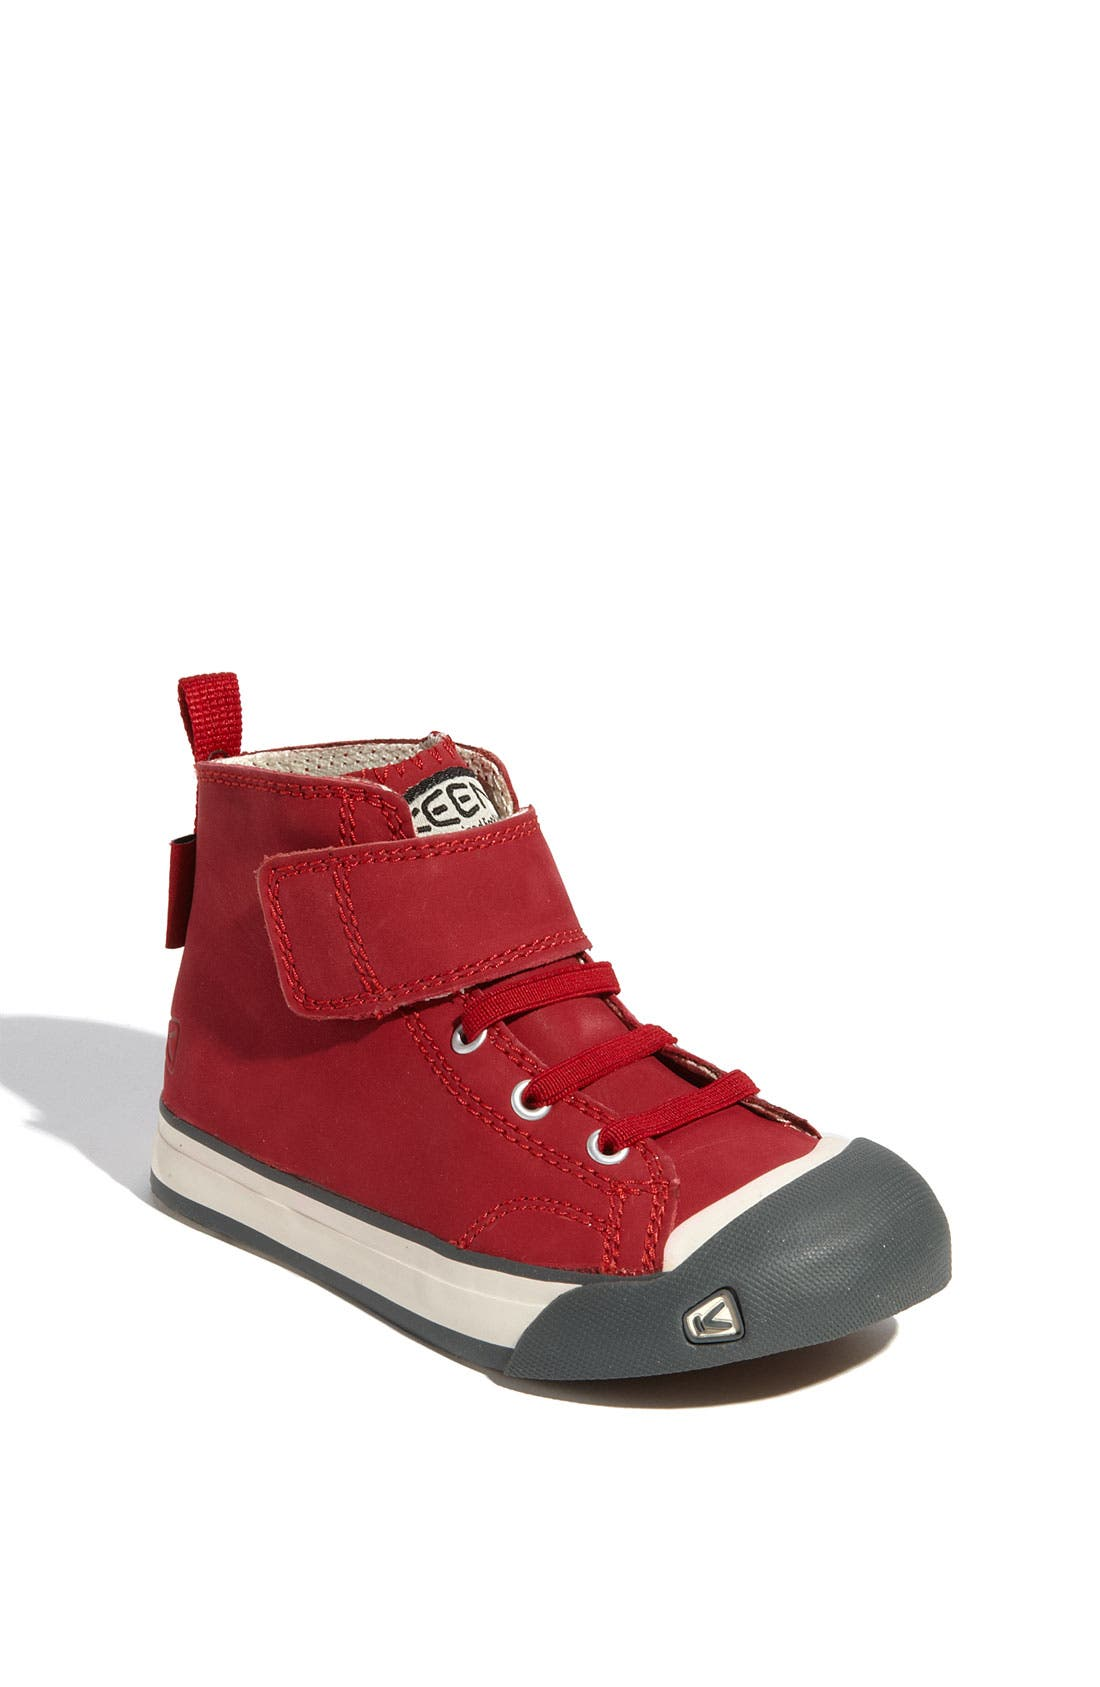 Alternate Image 1 Selected - Keen 'Coronado' High Top (Toddler & Little Kid)